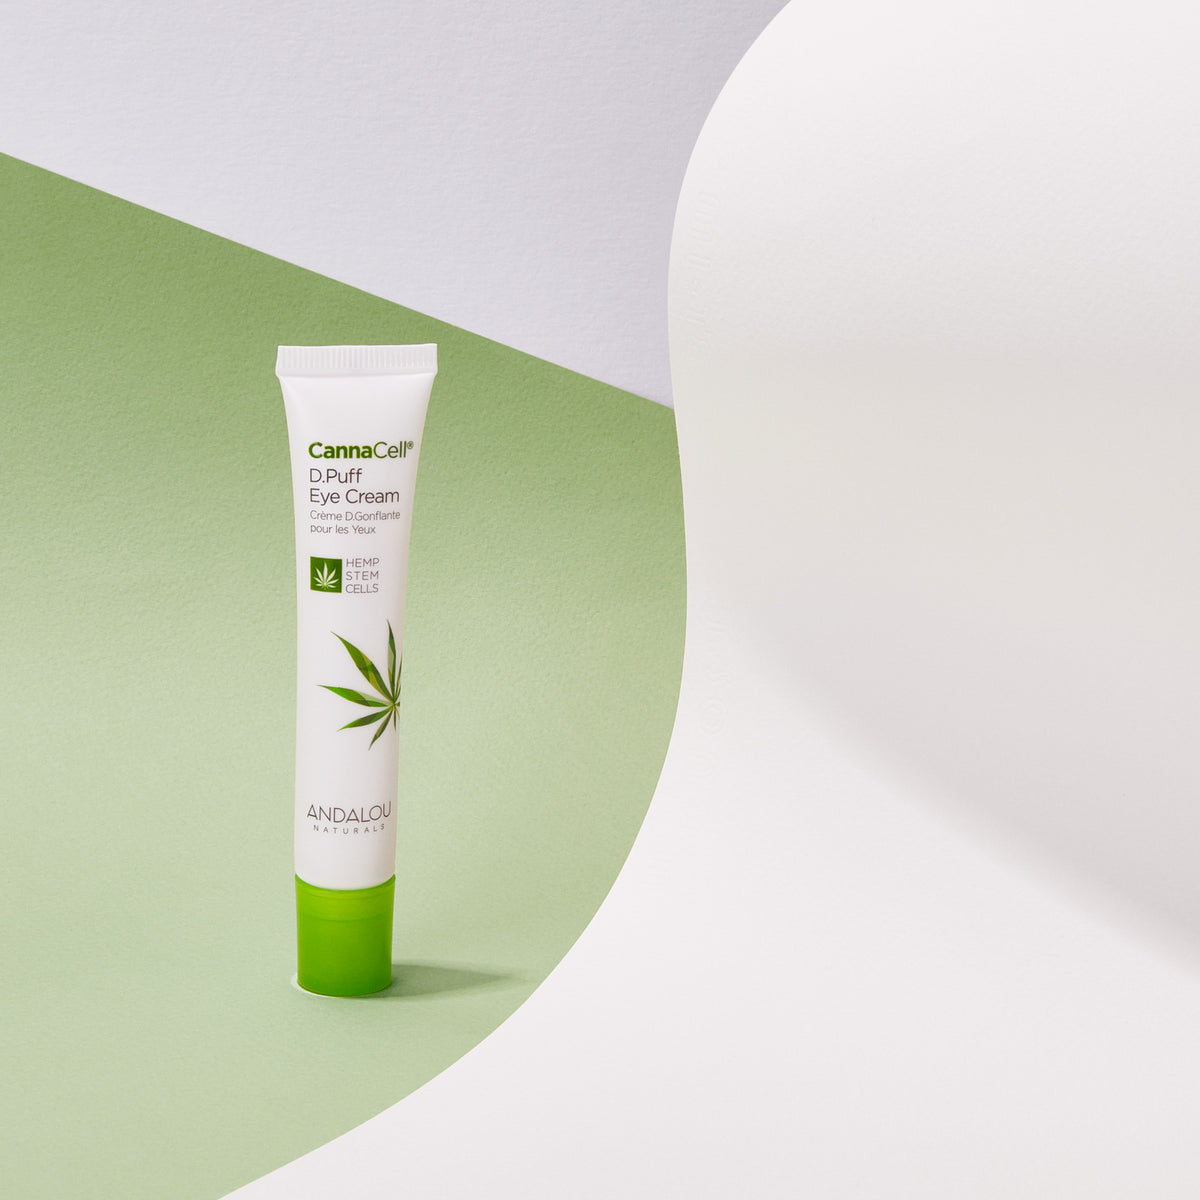 CannaCell D.Puff Eye Cream - Andalou Naturals US